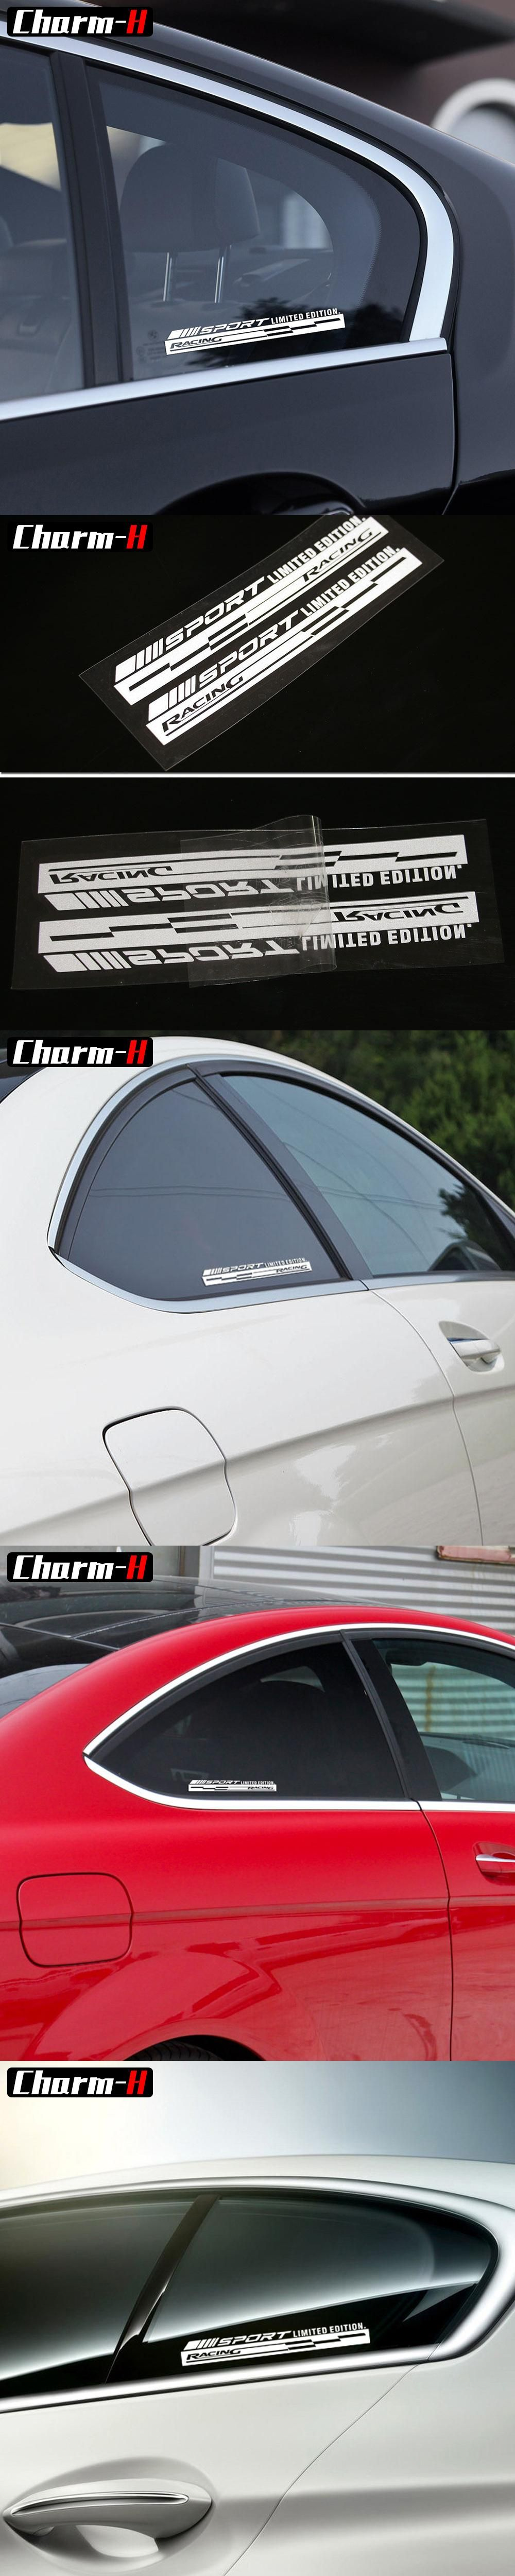 Reflective Racing Decal Window Vinyl Logo Stickers Graphic For Mercedes Benz Amg Sport C E 63 W204 W205 W212 W211 A45 Cla C117 Mercedes Benz Benz Amg